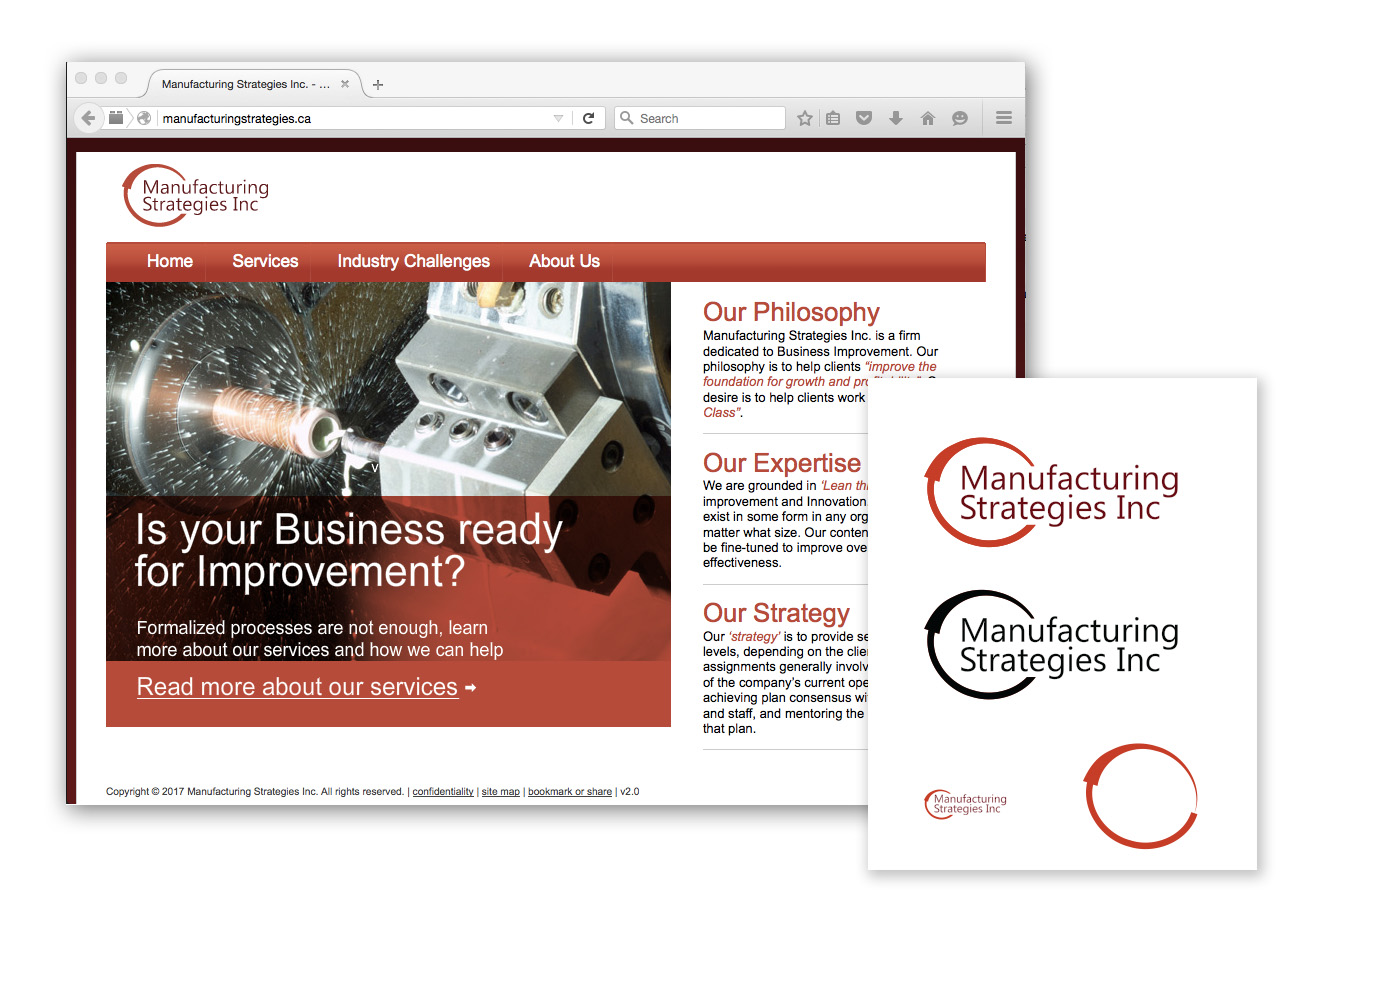 Manufacturing Strategies Inc. | 2011 - Logo and identity - Web design - Business cards and office templates